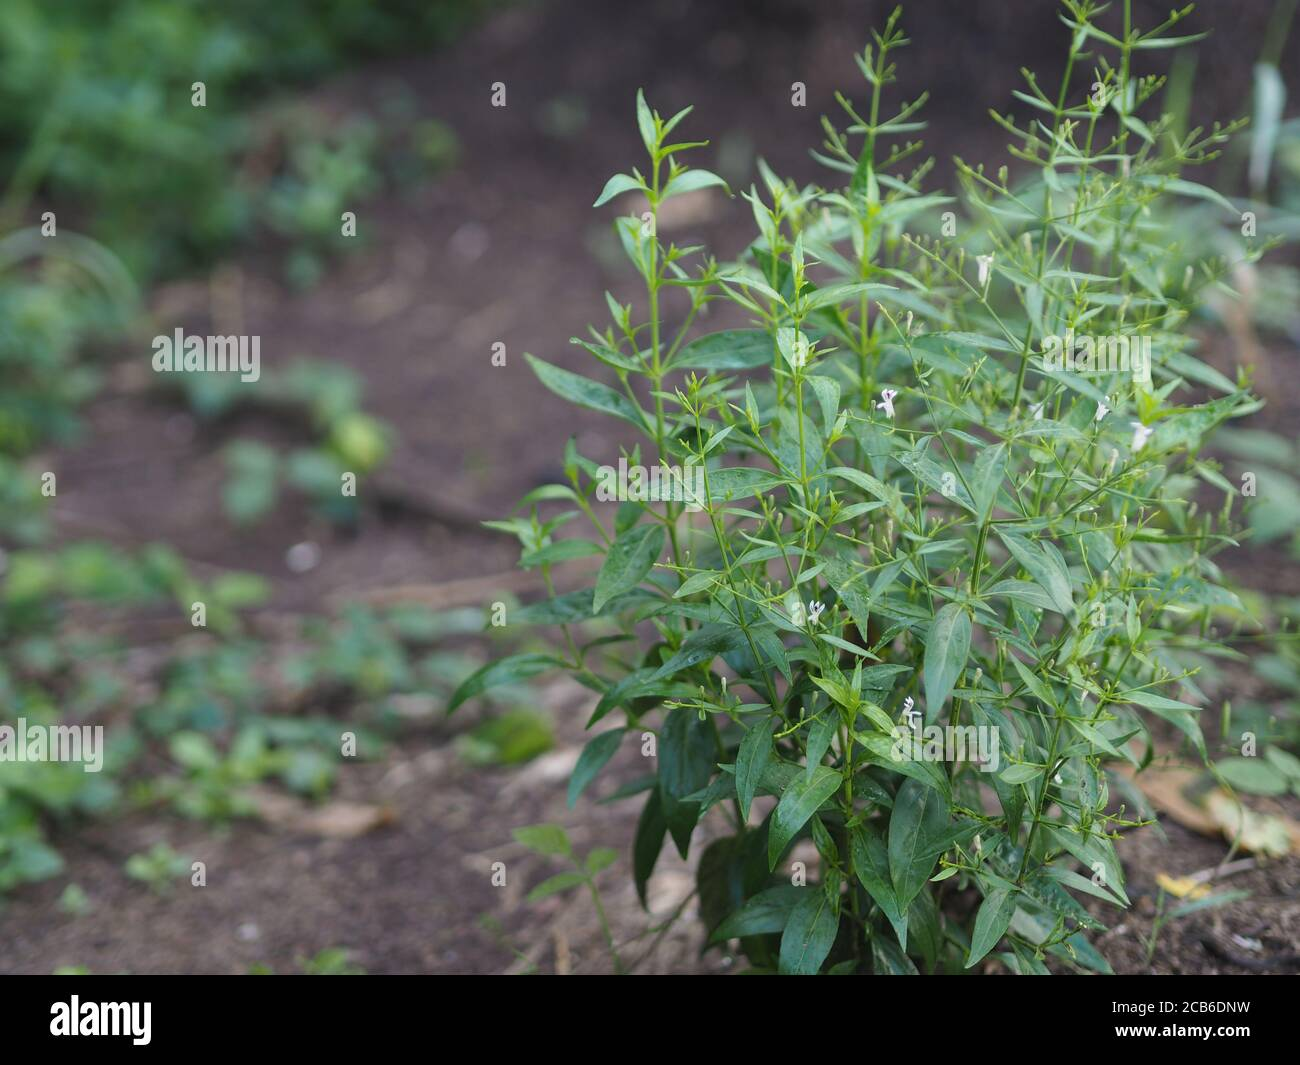 King Of Bitters Scientific Name Andrographis Paniculata Burm Wall Ex Nees Fah Talai Jhon Thai Herbs Relieve Sore Throat Reduce Fever Heat Up The Stock Photo Alamy Cognate with german wurm, english worm. alamy